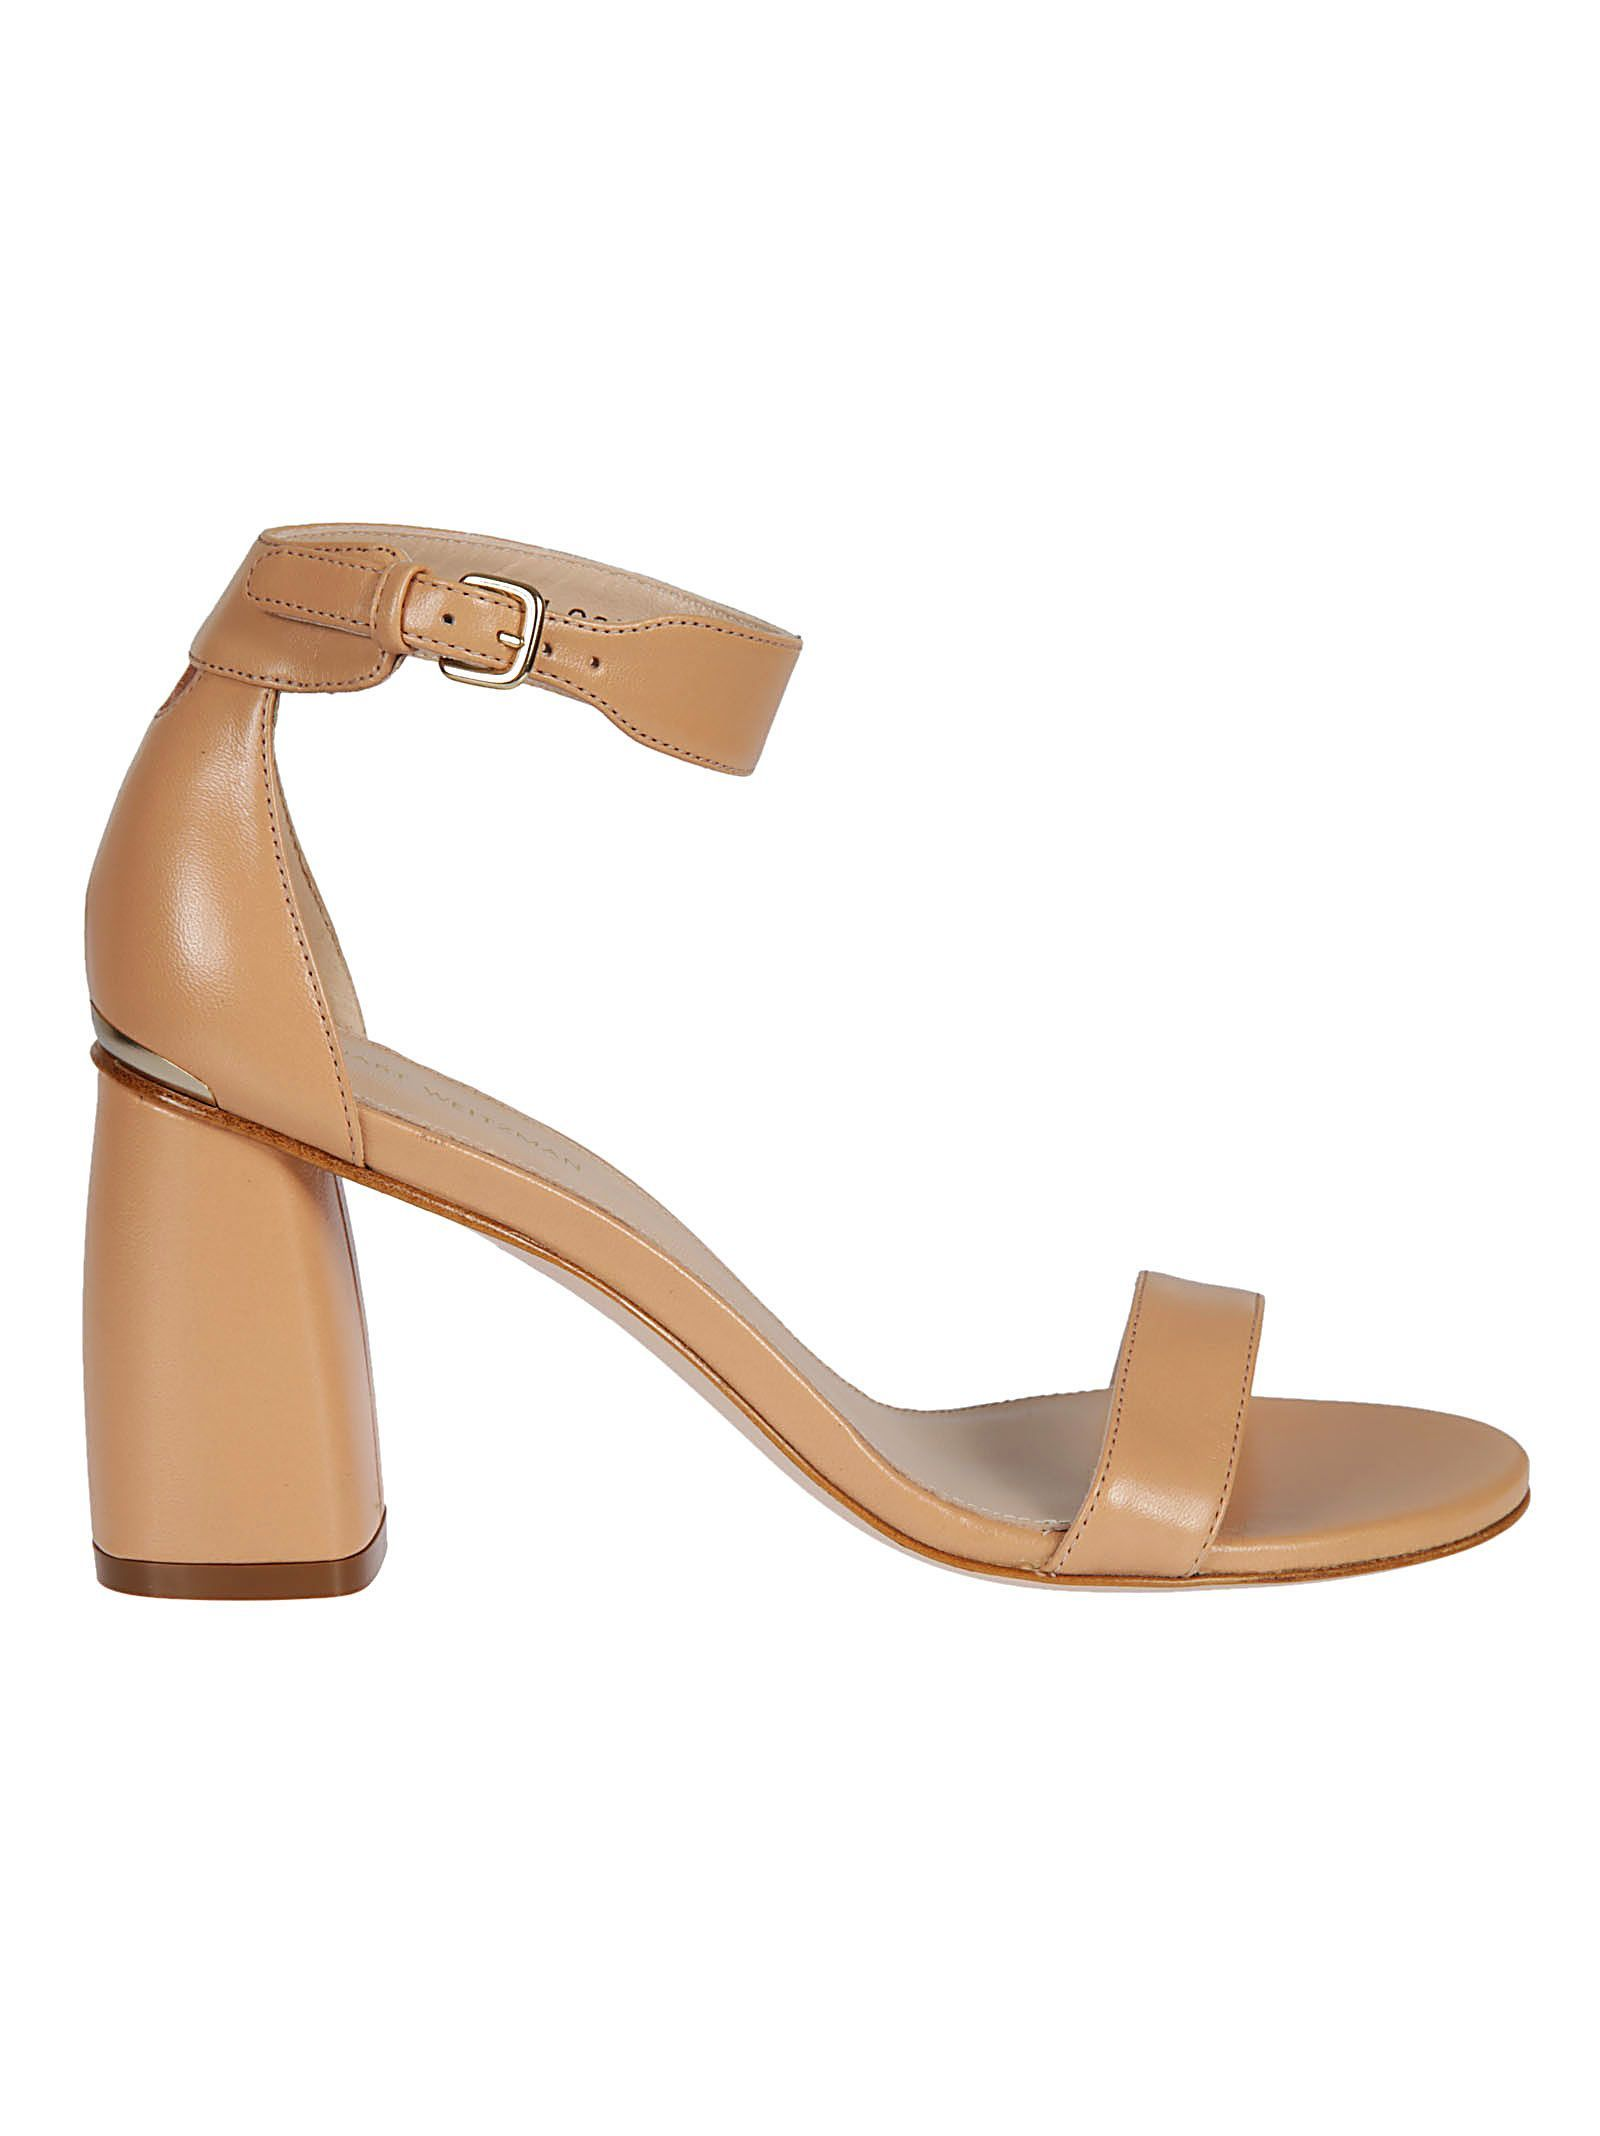 Partlynude Sandals with Mid-Height Heel in Nude Nappa Leather Stuart Weitzman Outlet Popular hq82GOf